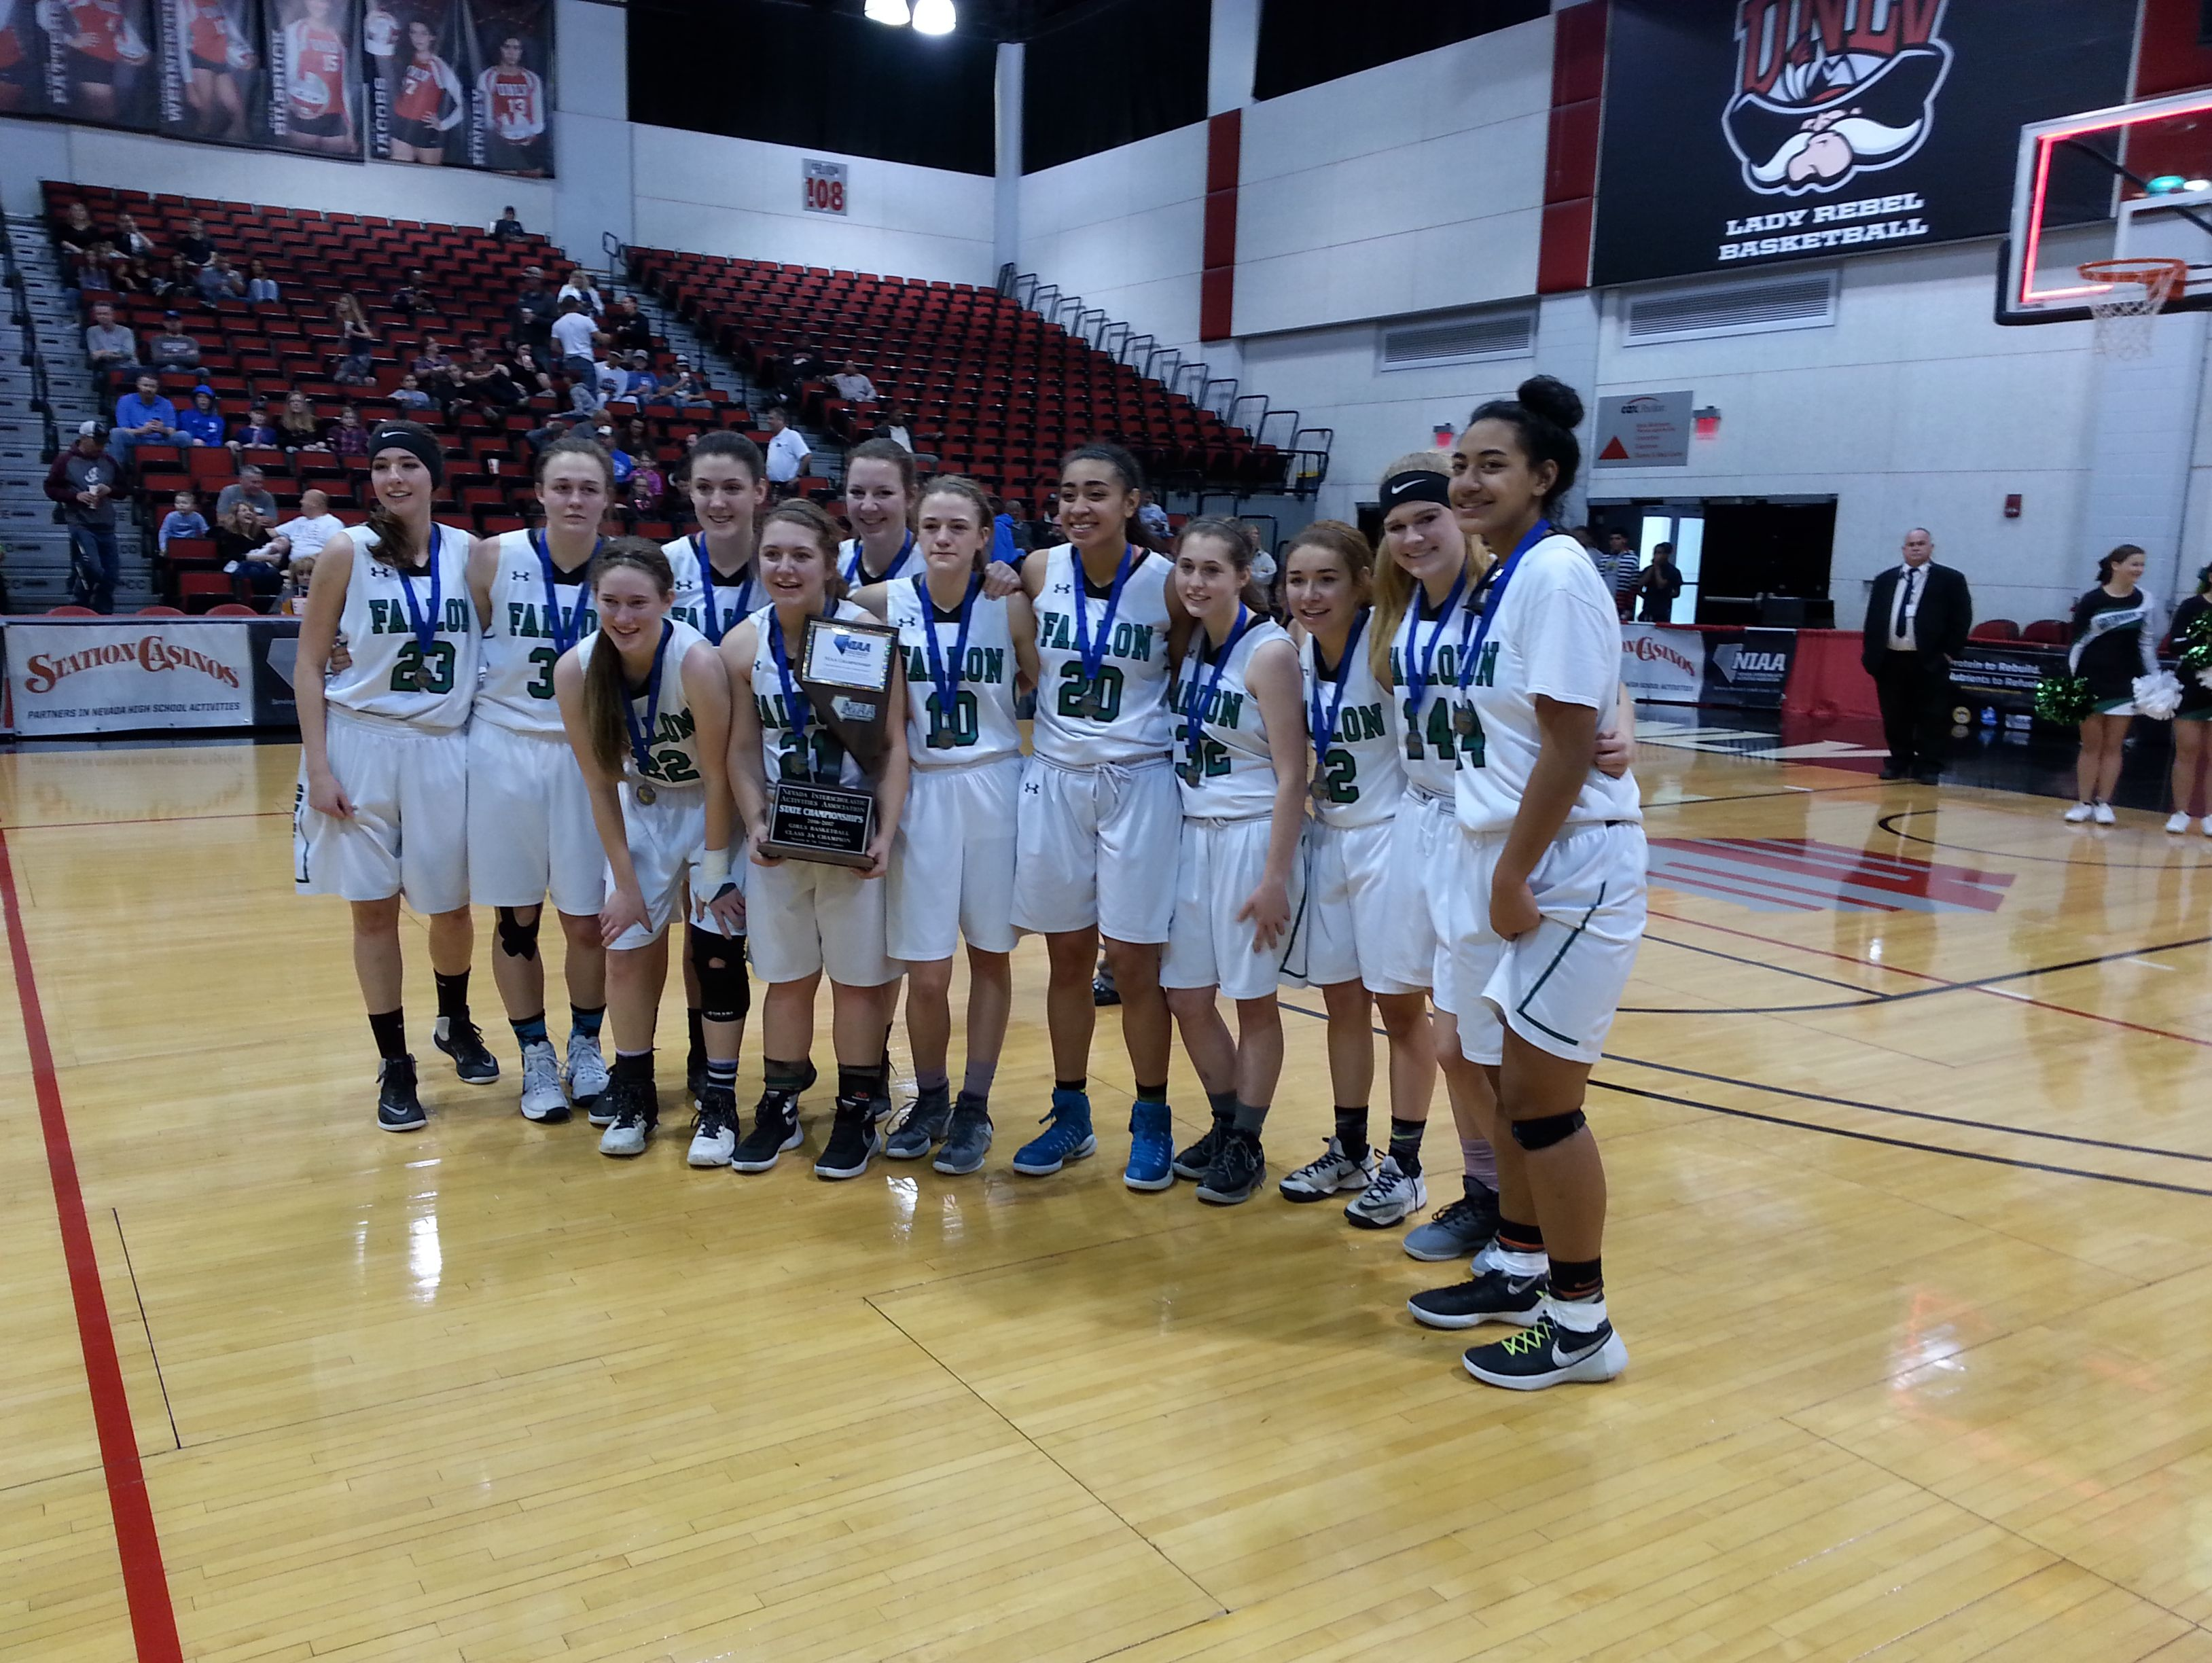 The Fallon players hold the trophy after the winning the state basketball championship Saturday in Las Vegas.